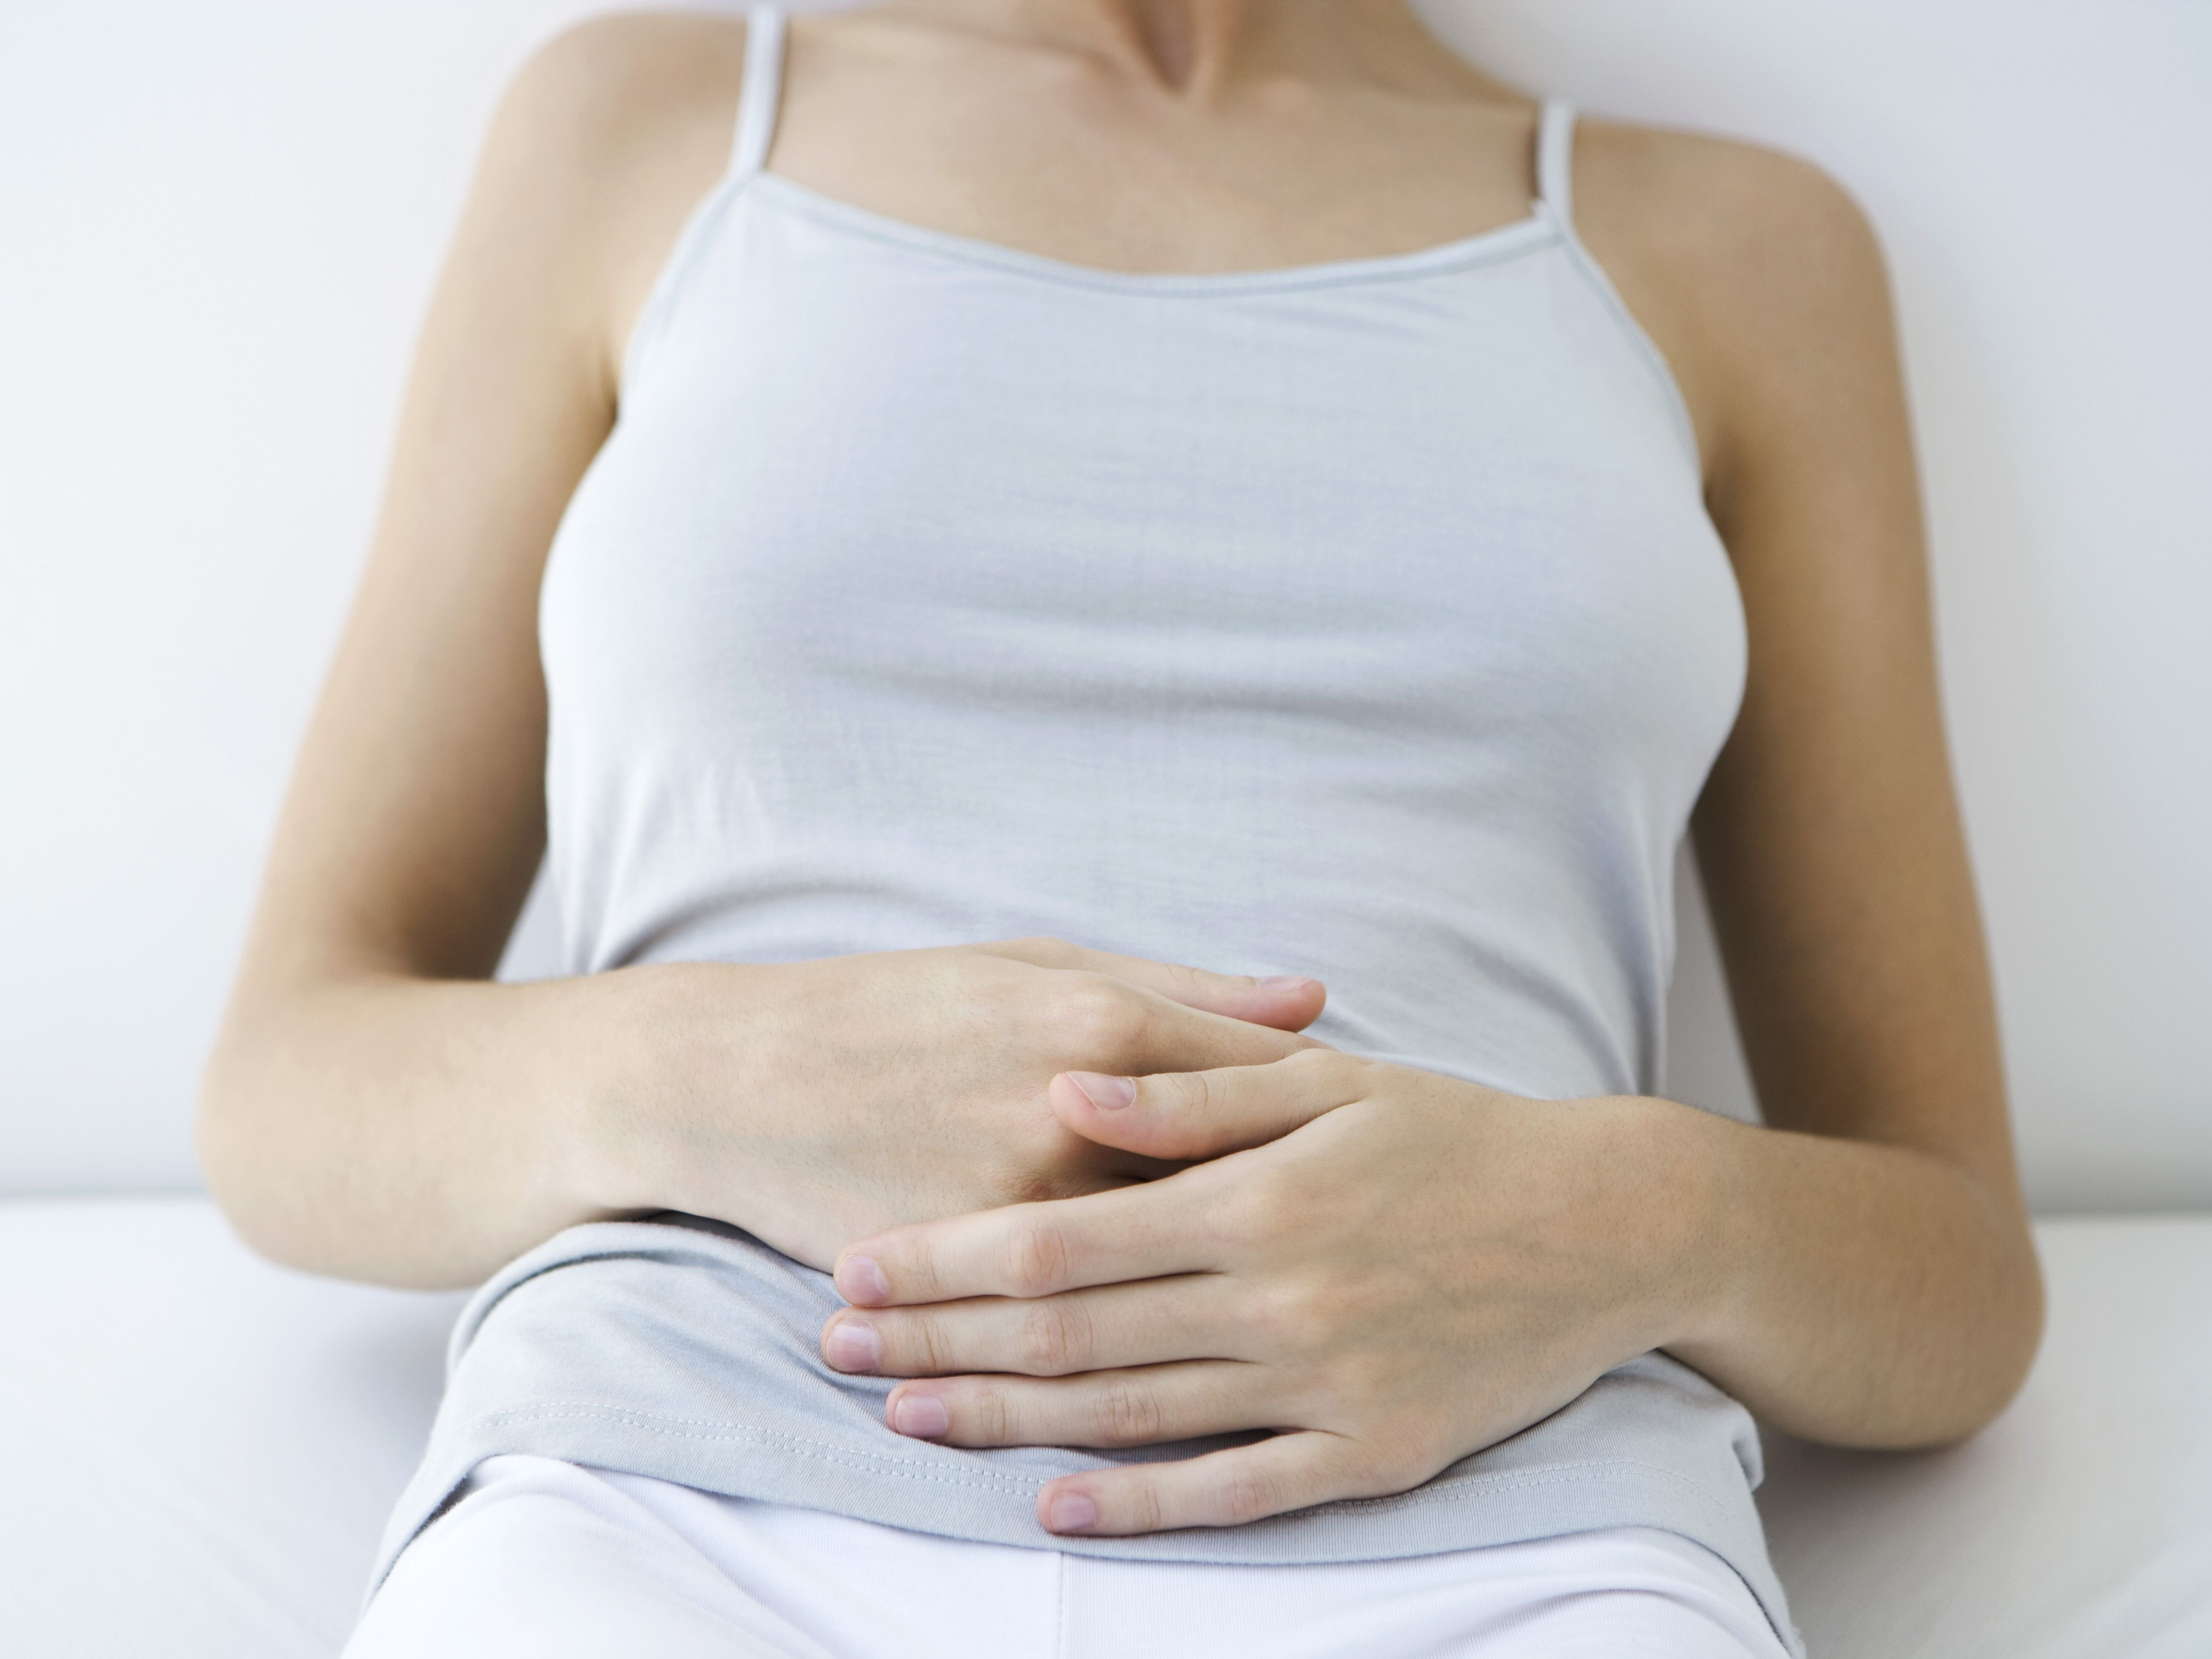 Treament for Nausea and Vomiting After Surgery